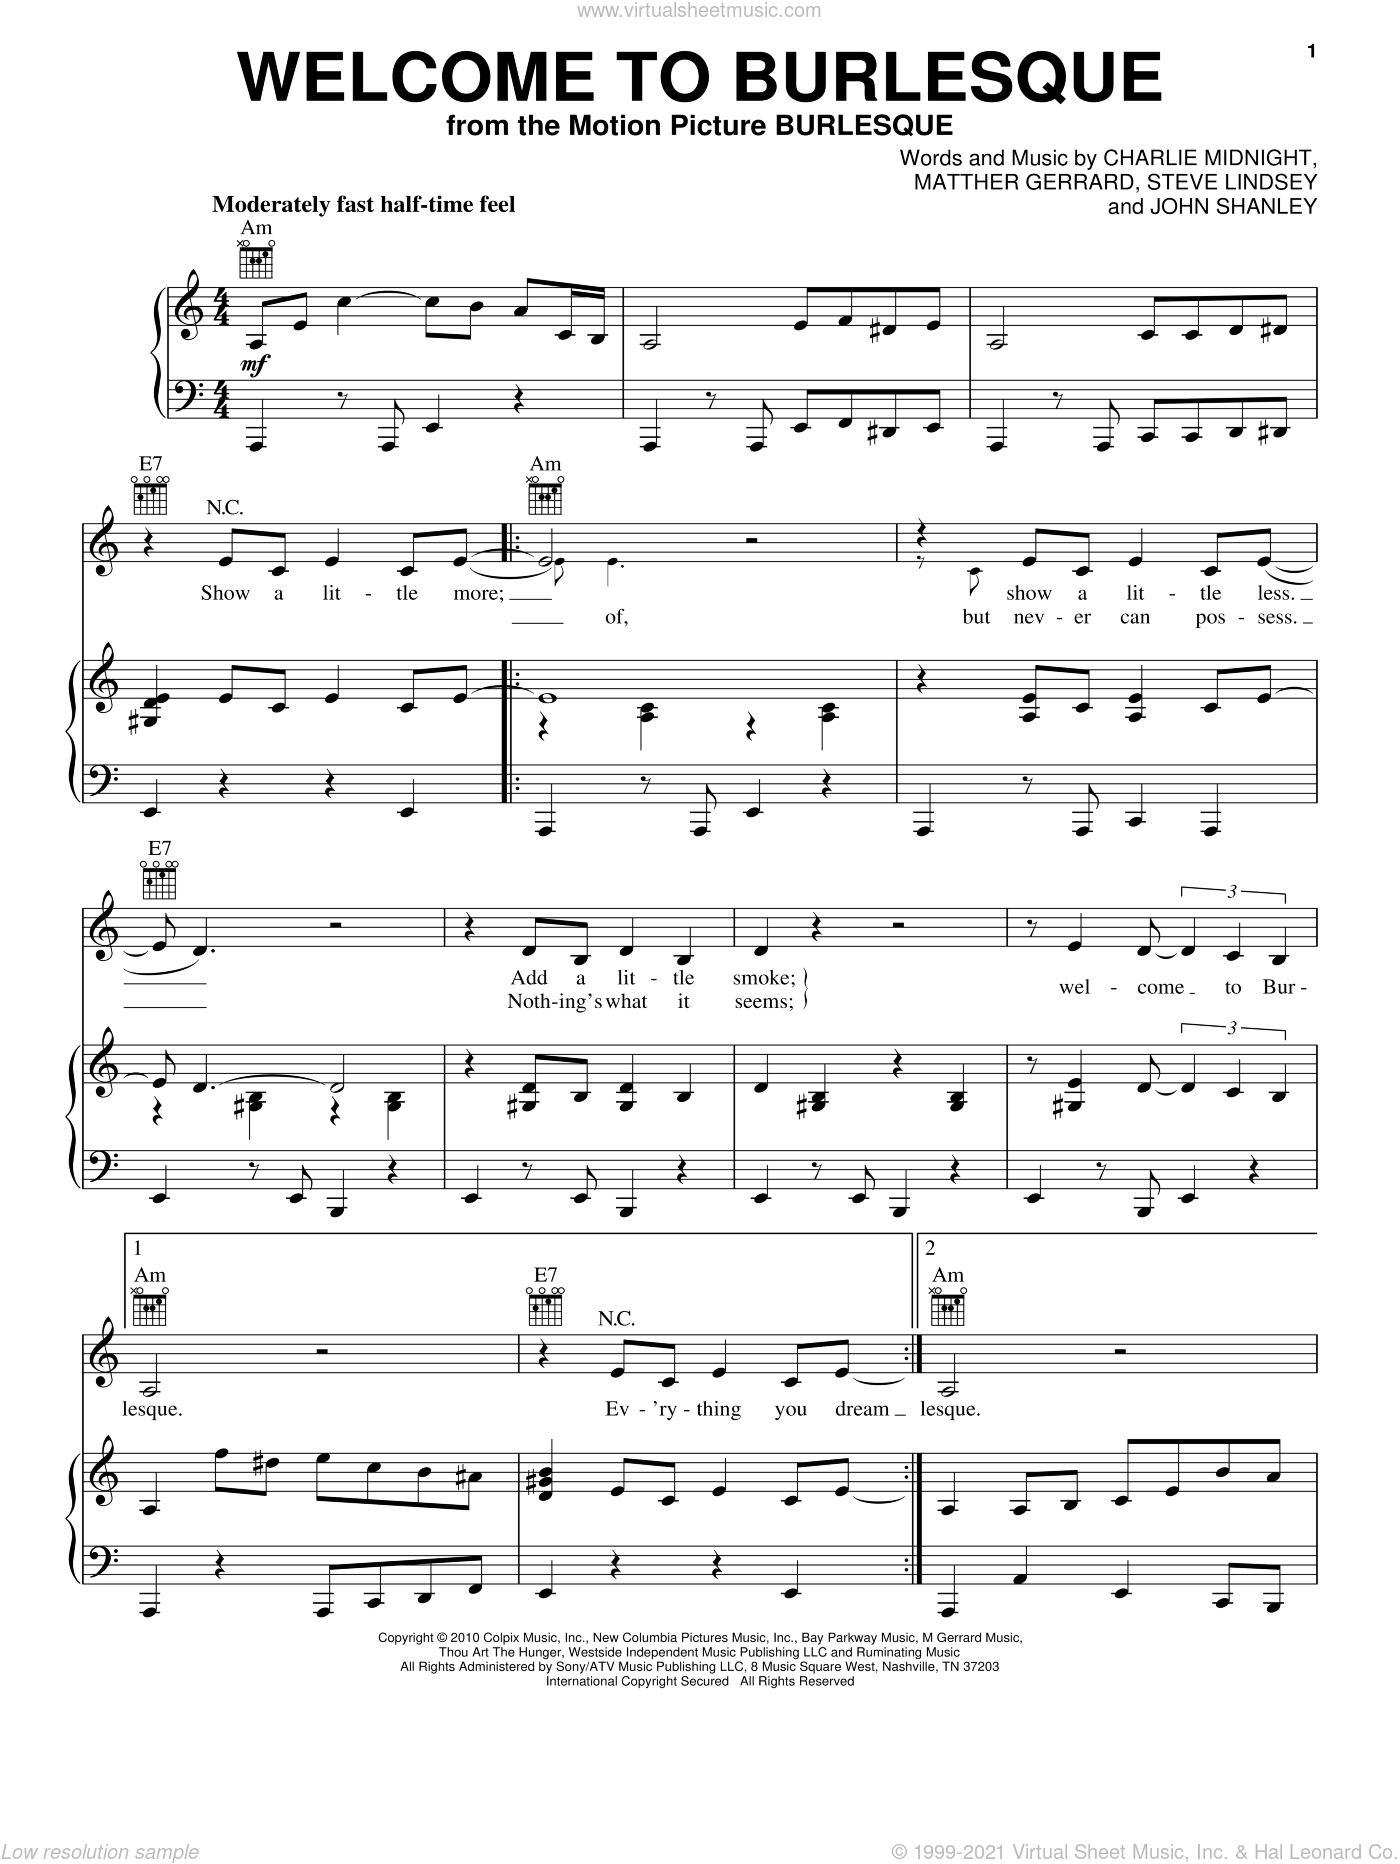 Welcome To Burlesque sheet music for voice, piano or guitar by Cher, Burlesque (Movie), Charlie Midnight, John Shanley, Matthew Gerrard and Steve Lindsey, intermediate skill level